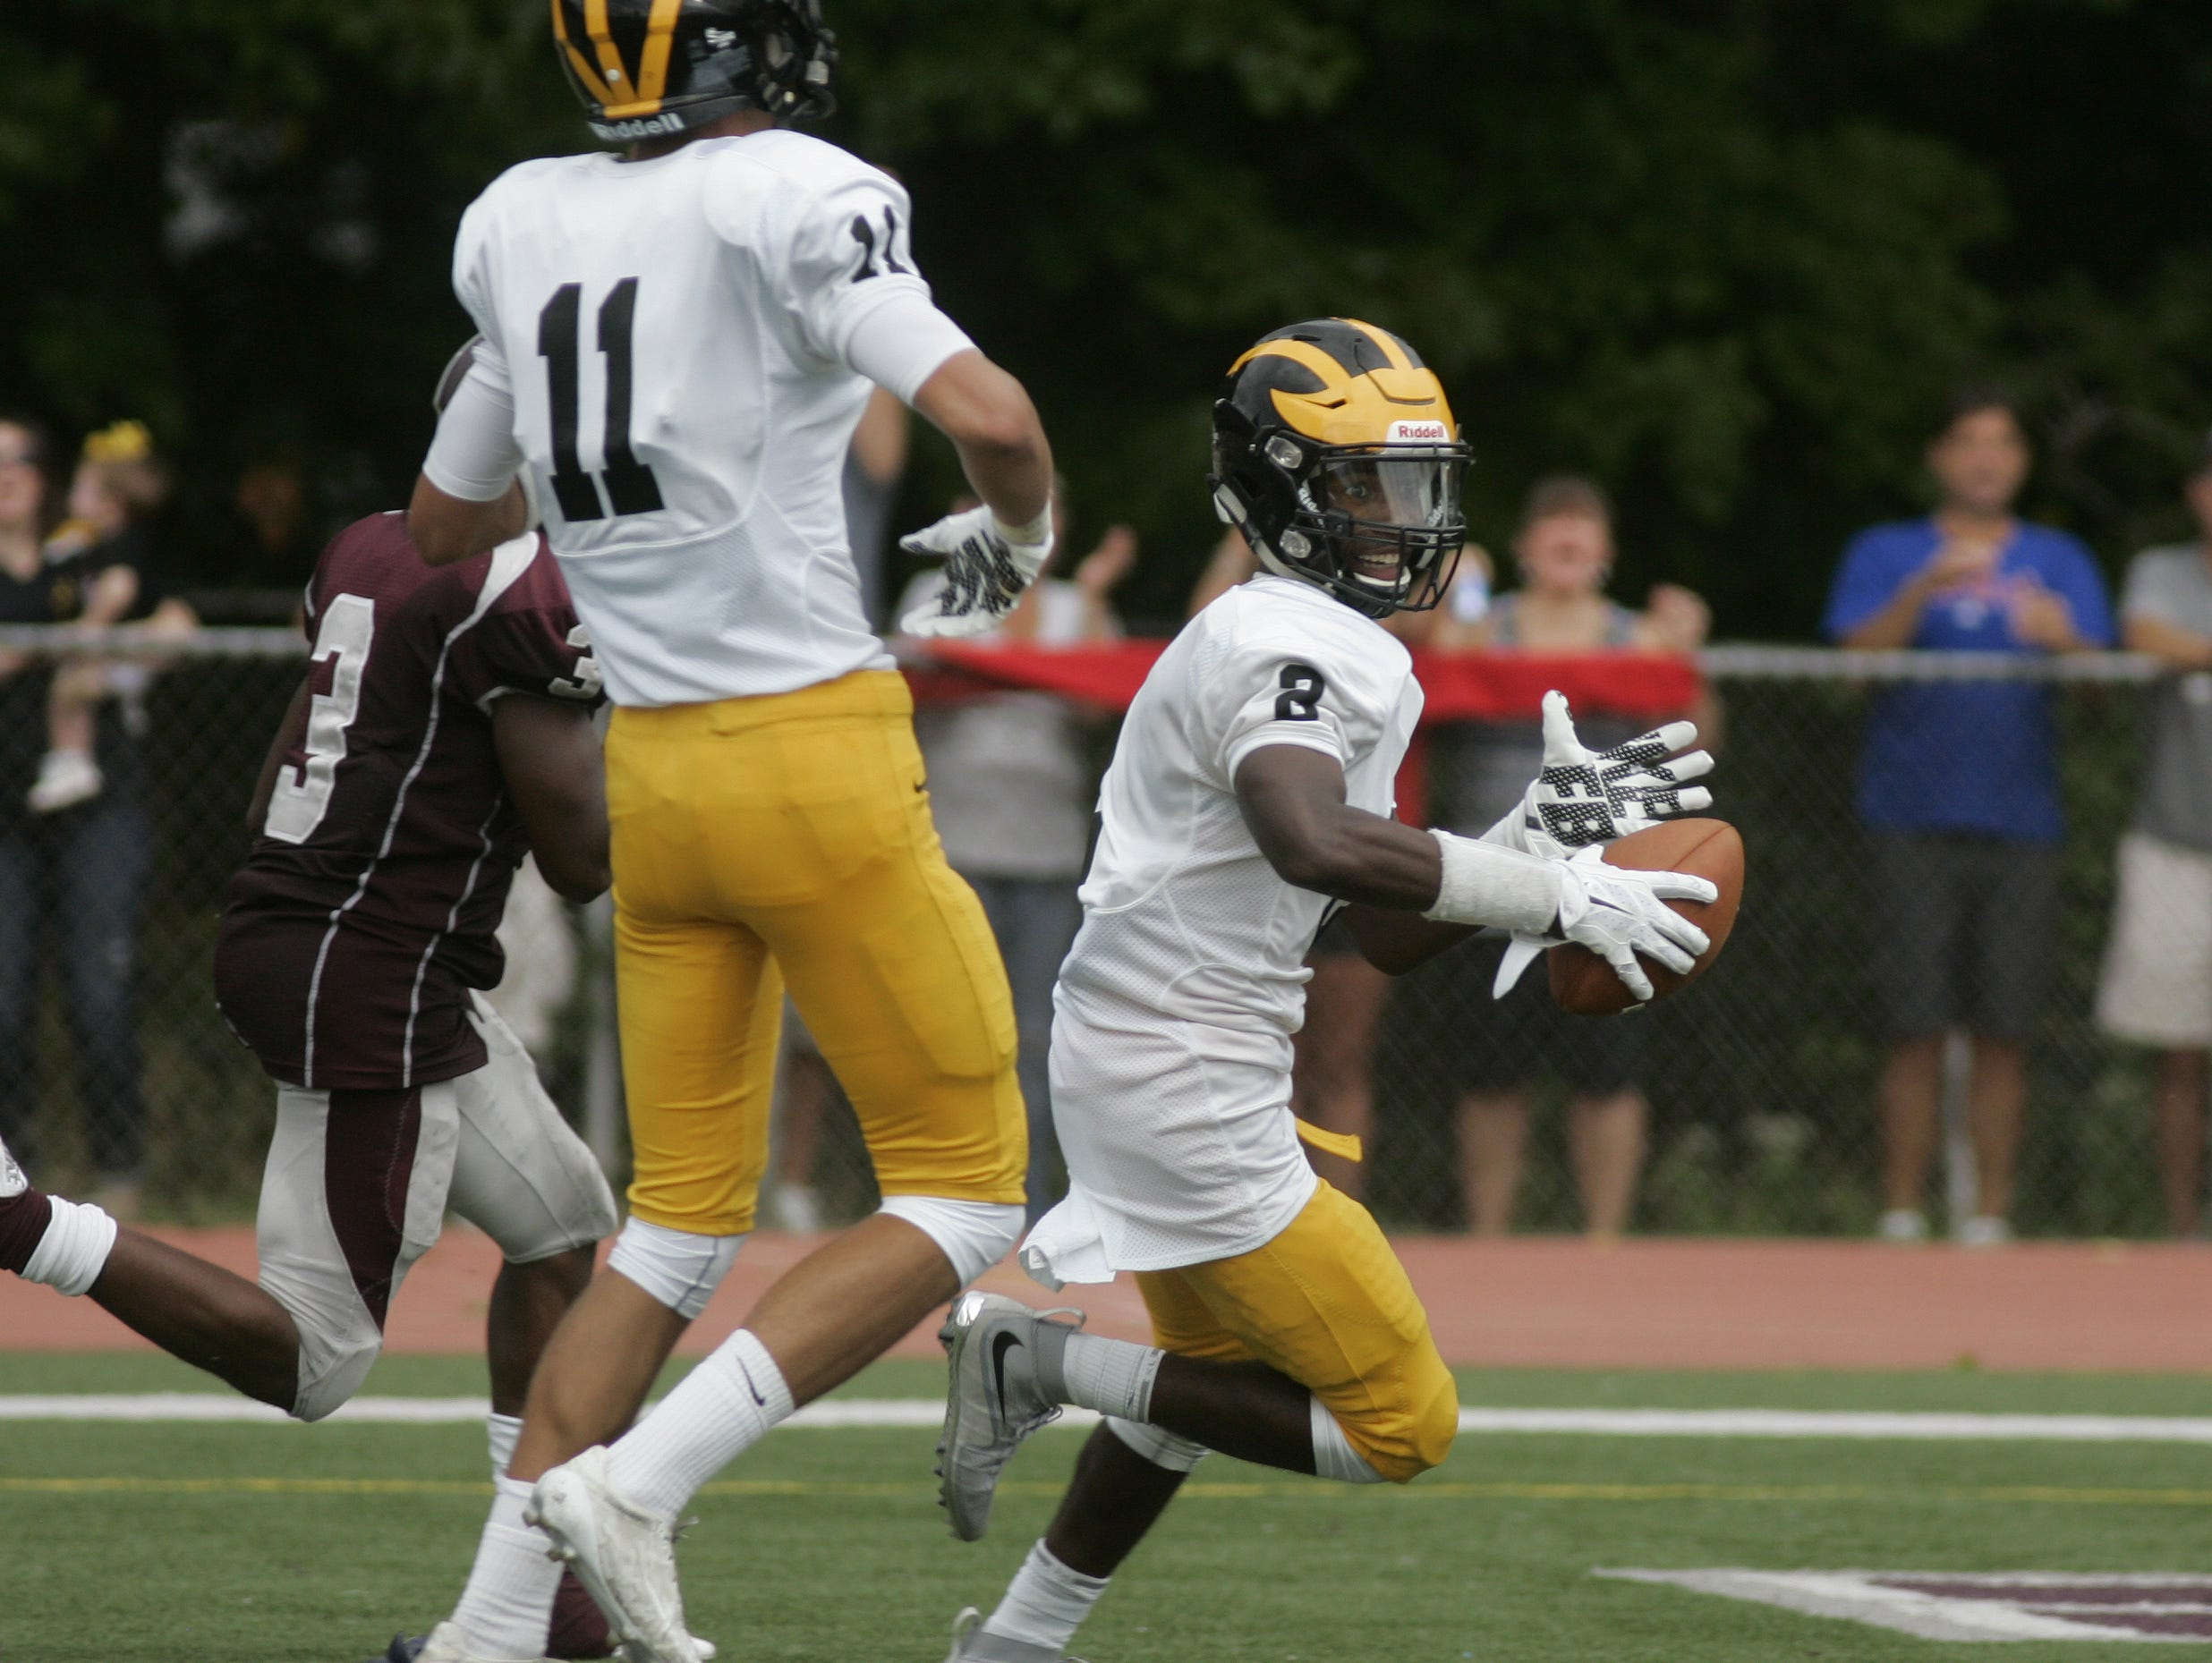 St. John Vianney wide receiver Khalil Haskins crosses the goal-line on a 48-yard touchdown pass from quarterback Anthony Brown late in the first half of the Lancers' 30-21 win at Matawan on Saturday